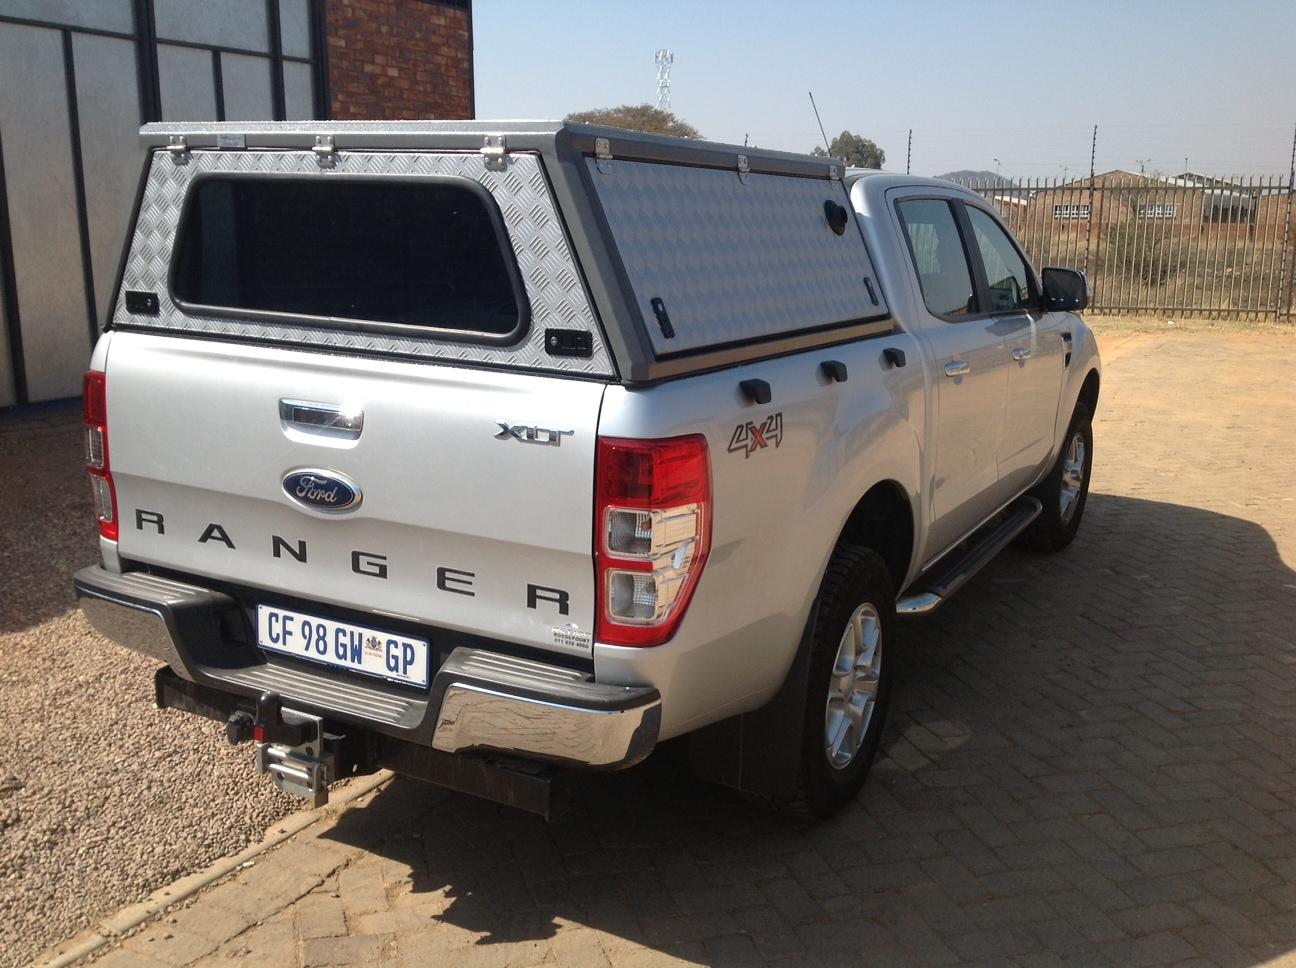 3 Door ALU Canopy for a Ford Ranger D/Cab